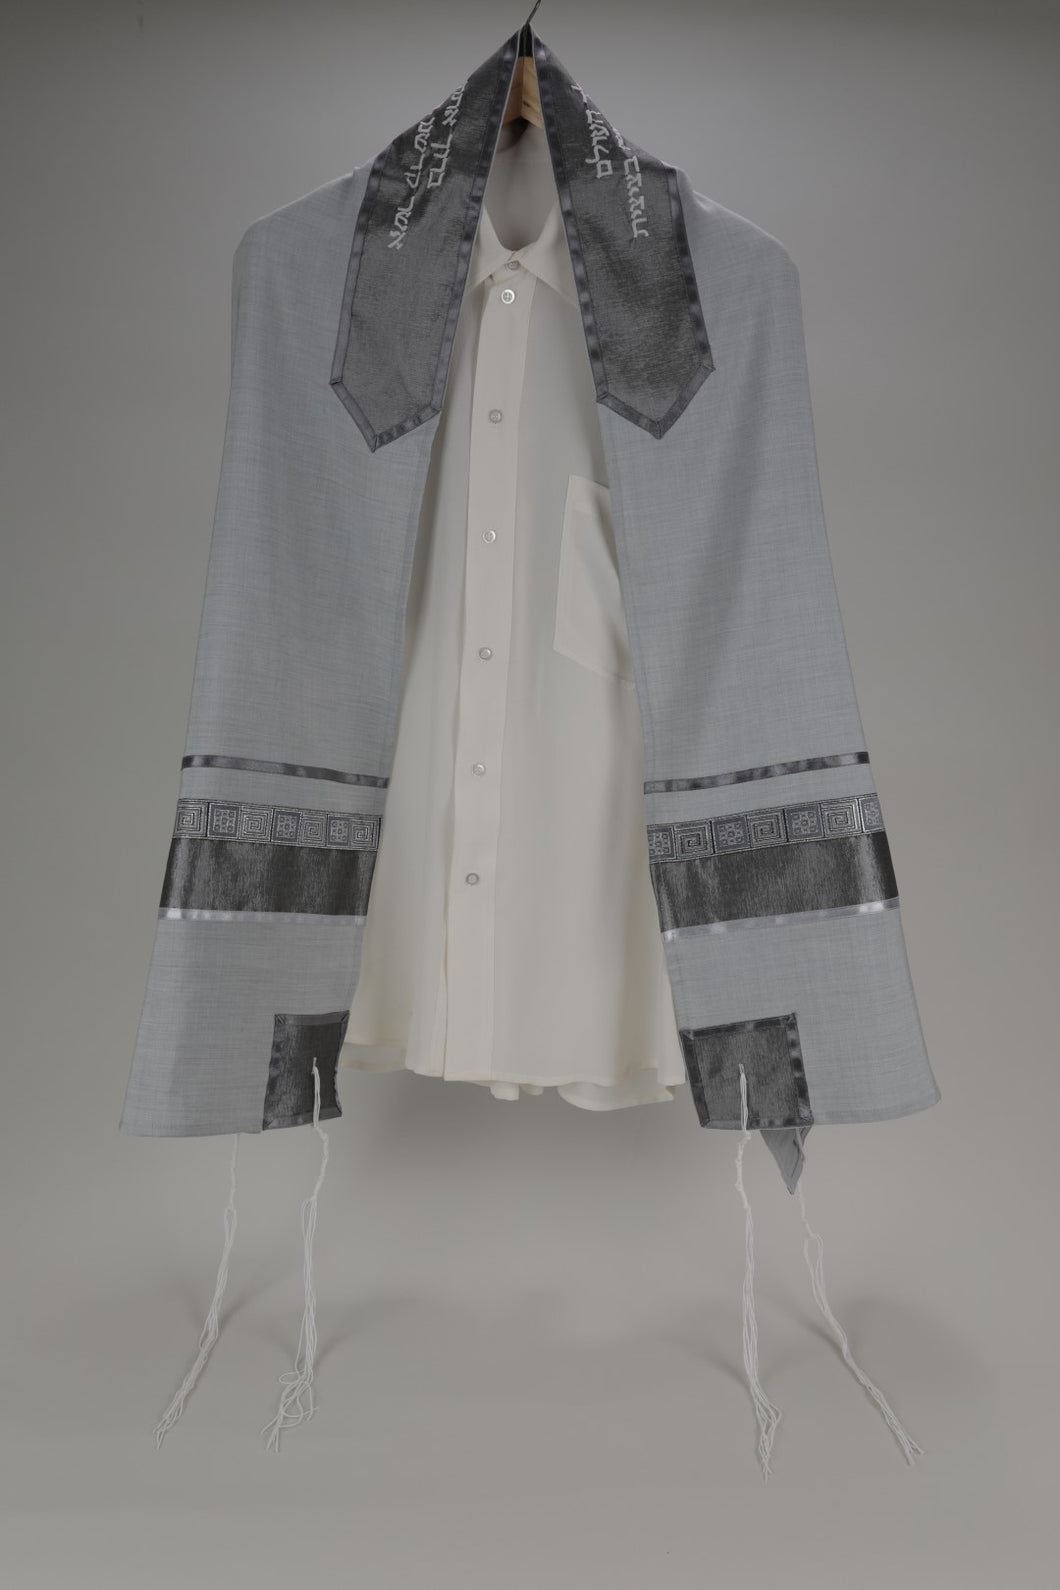 DISTINGUISHED GRAY TALLIT WITH GEOMETRIC DESIGN